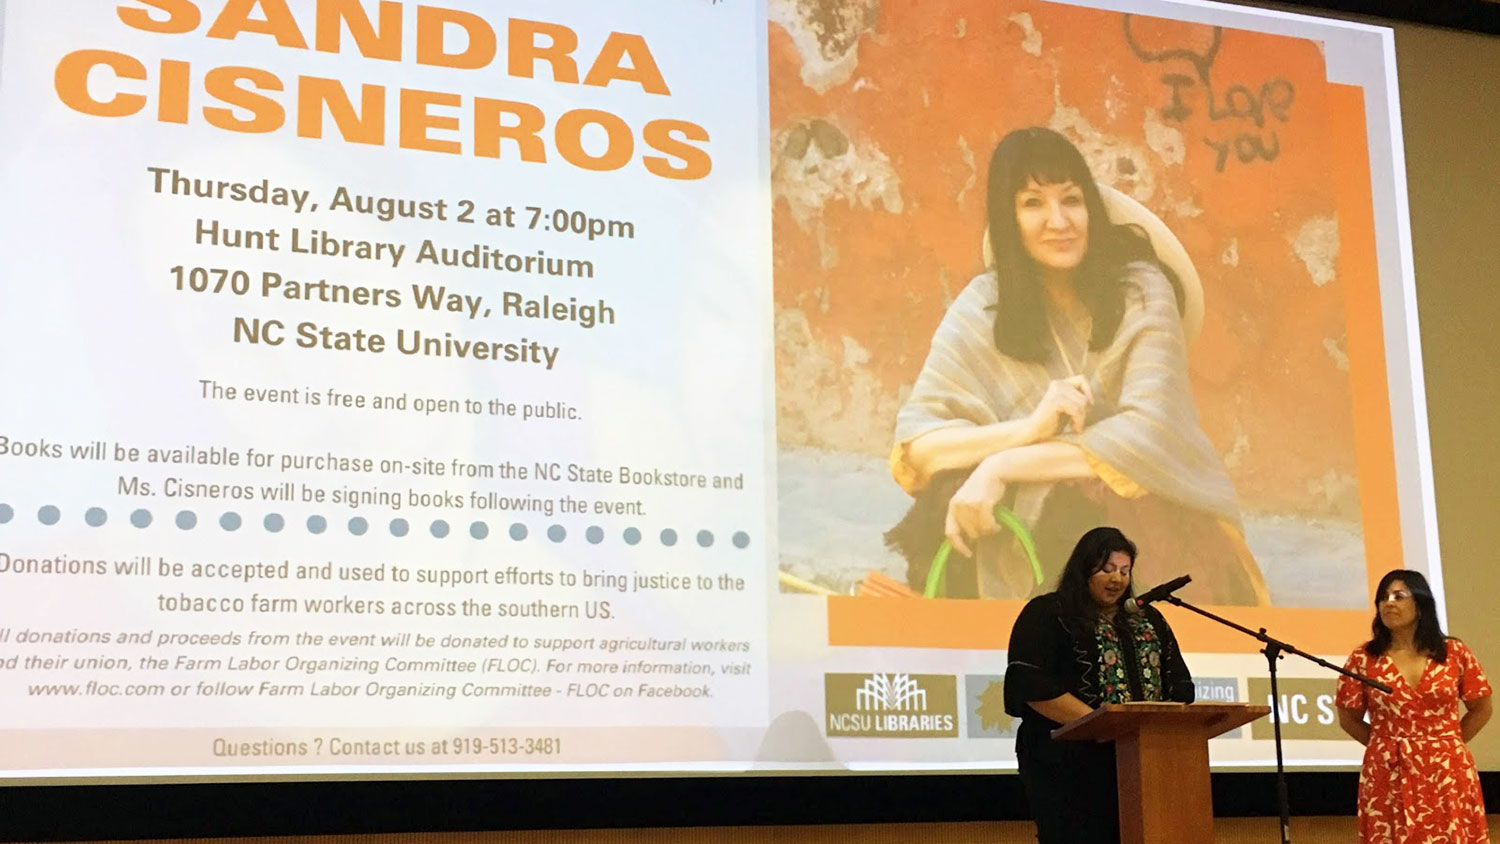 Marcela Torres-Cervantes of NC State introduces speaker and author Sandra Cisneros